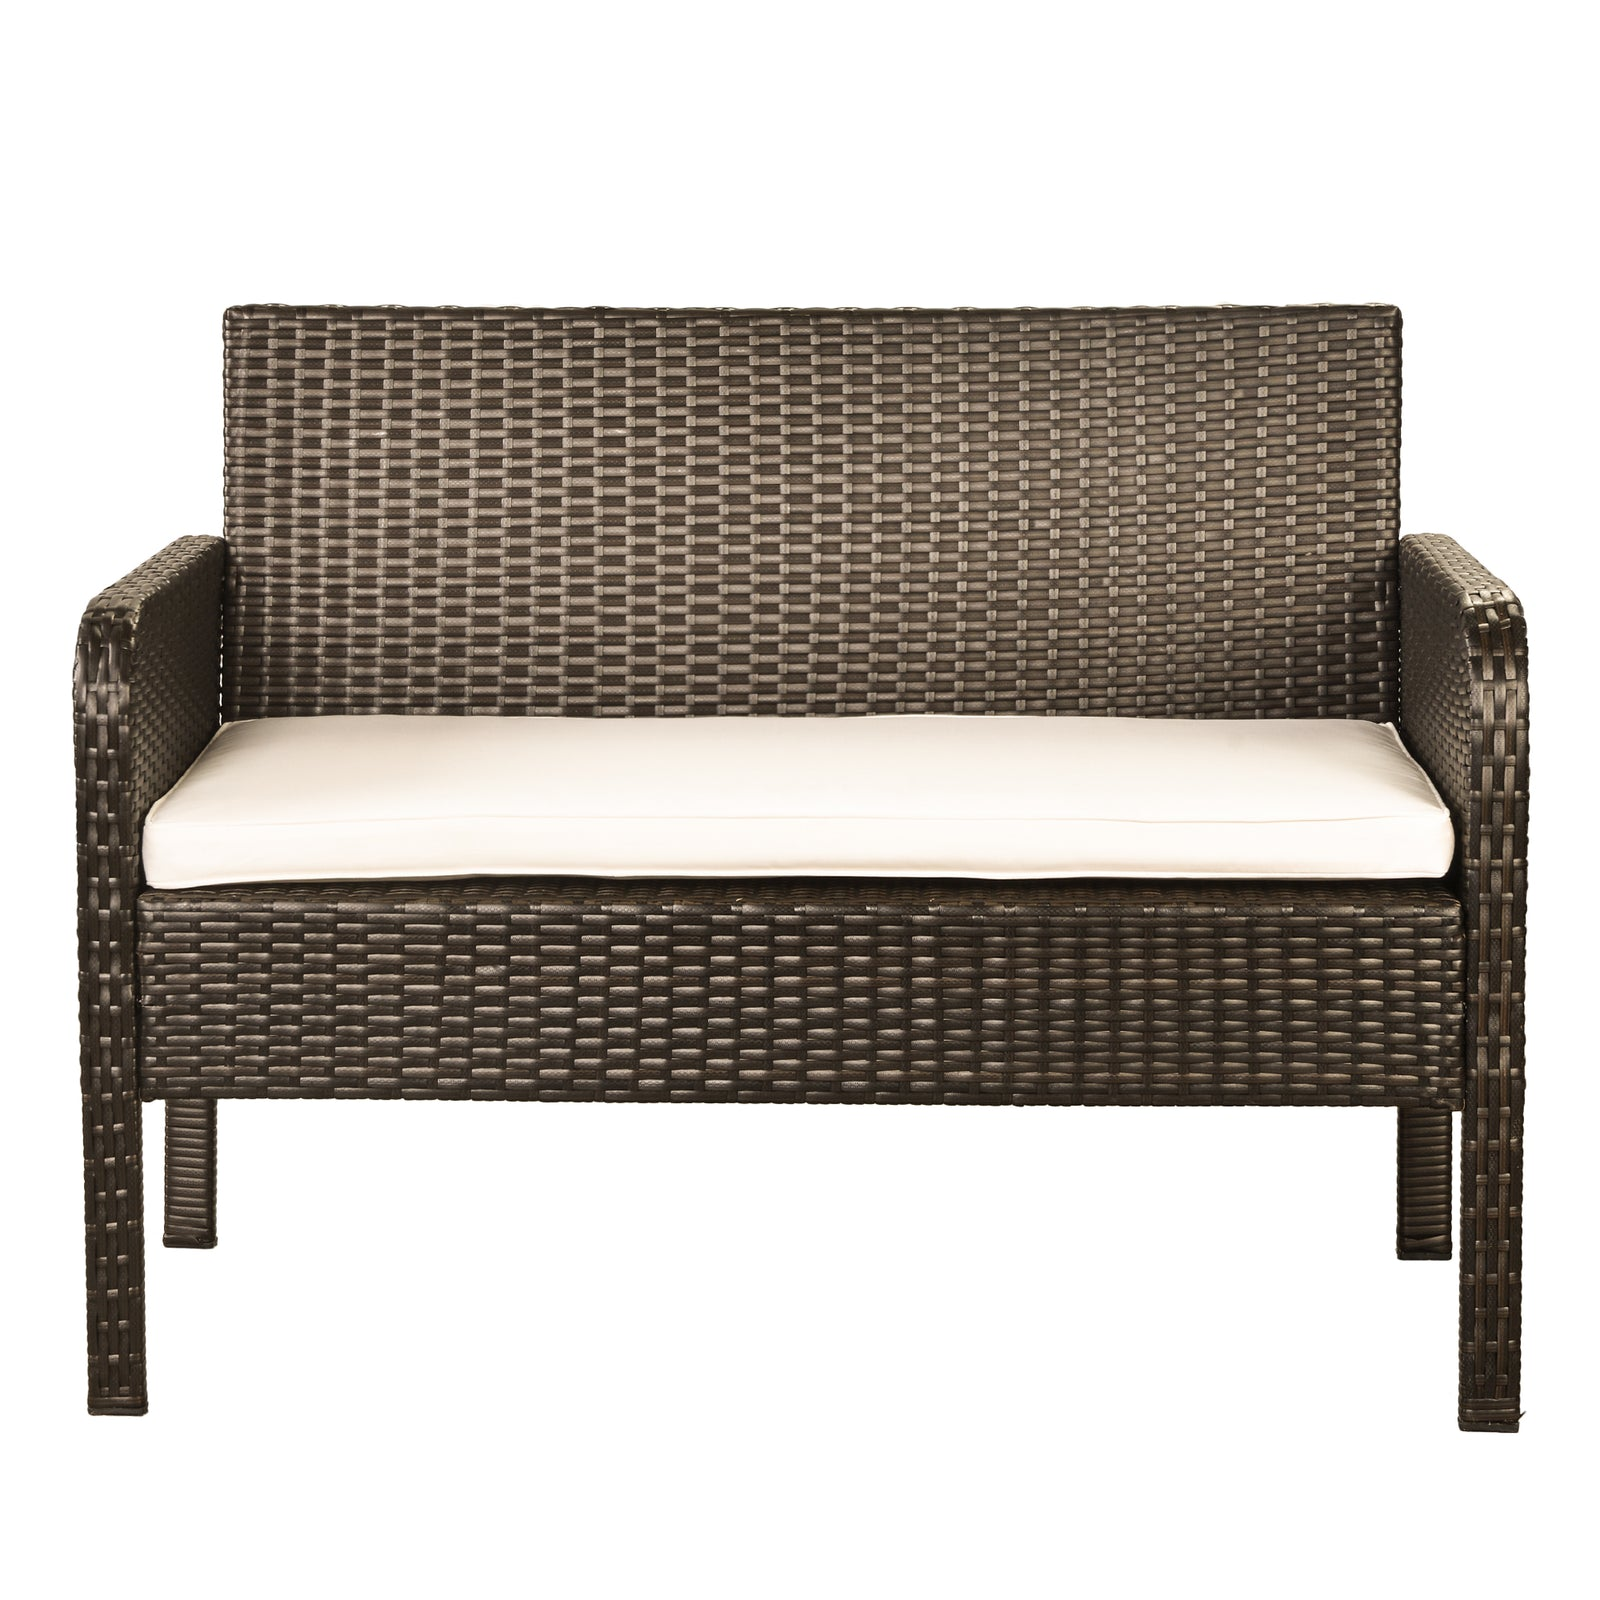 4 Counts - Rattan Sofa Seating Group with Cushions, Outdoor Rattan sofa Beige - Loveseat